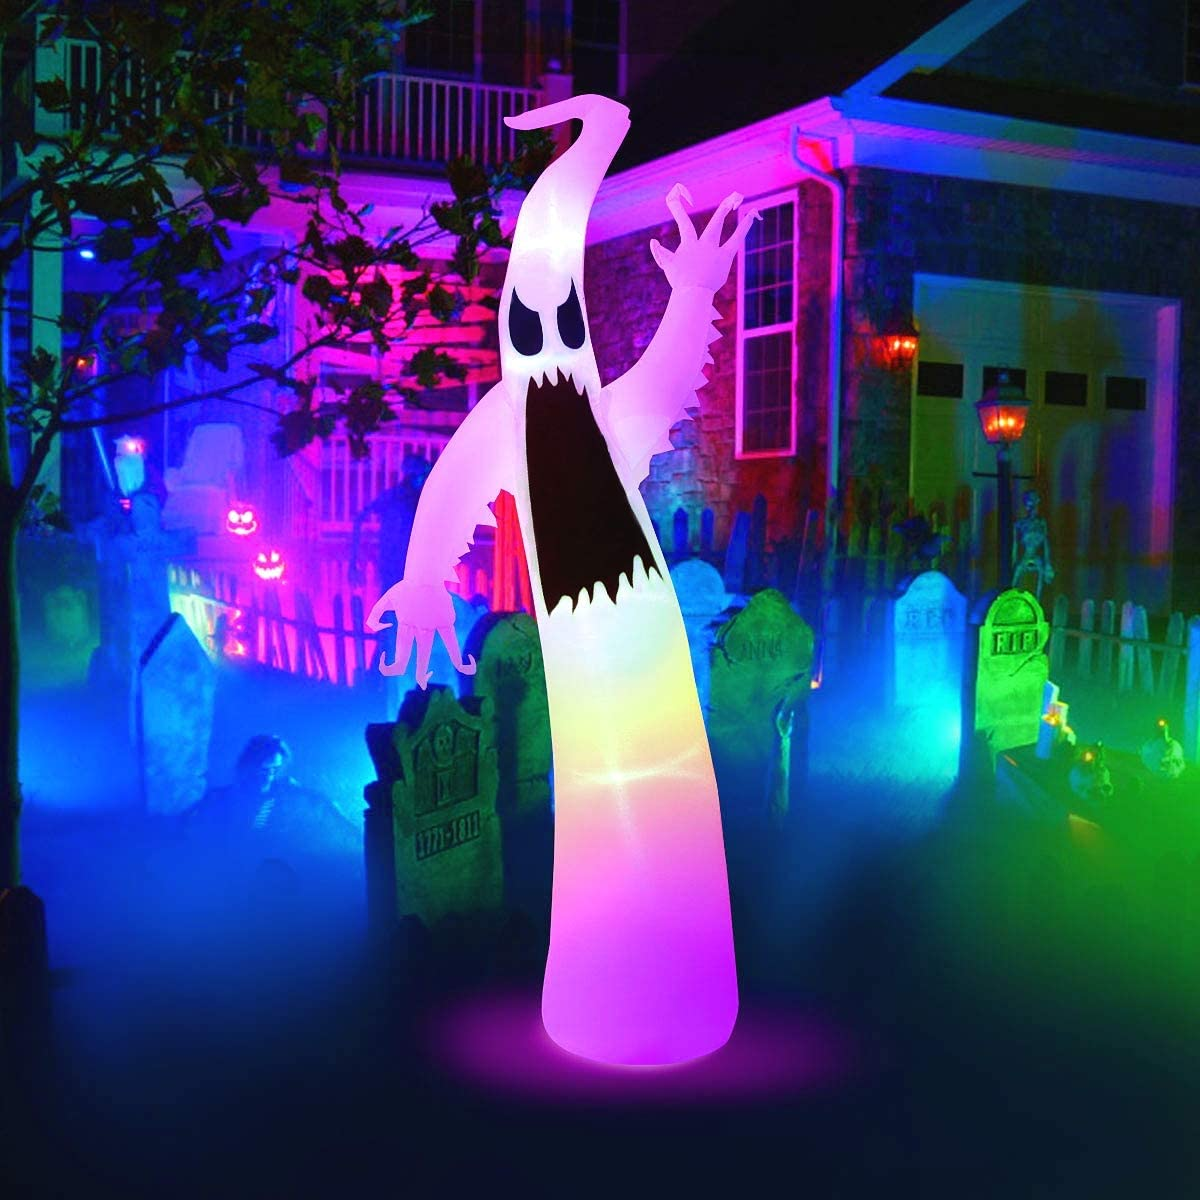 Image of: Halloween Inflatables 6ft Inflatables Ghost For Halloween Decorations Outdoor Built In Led Lights With Tethers Stakes For Outdoor Halloween Yard Decorations Garden Lawn Walmart Canada